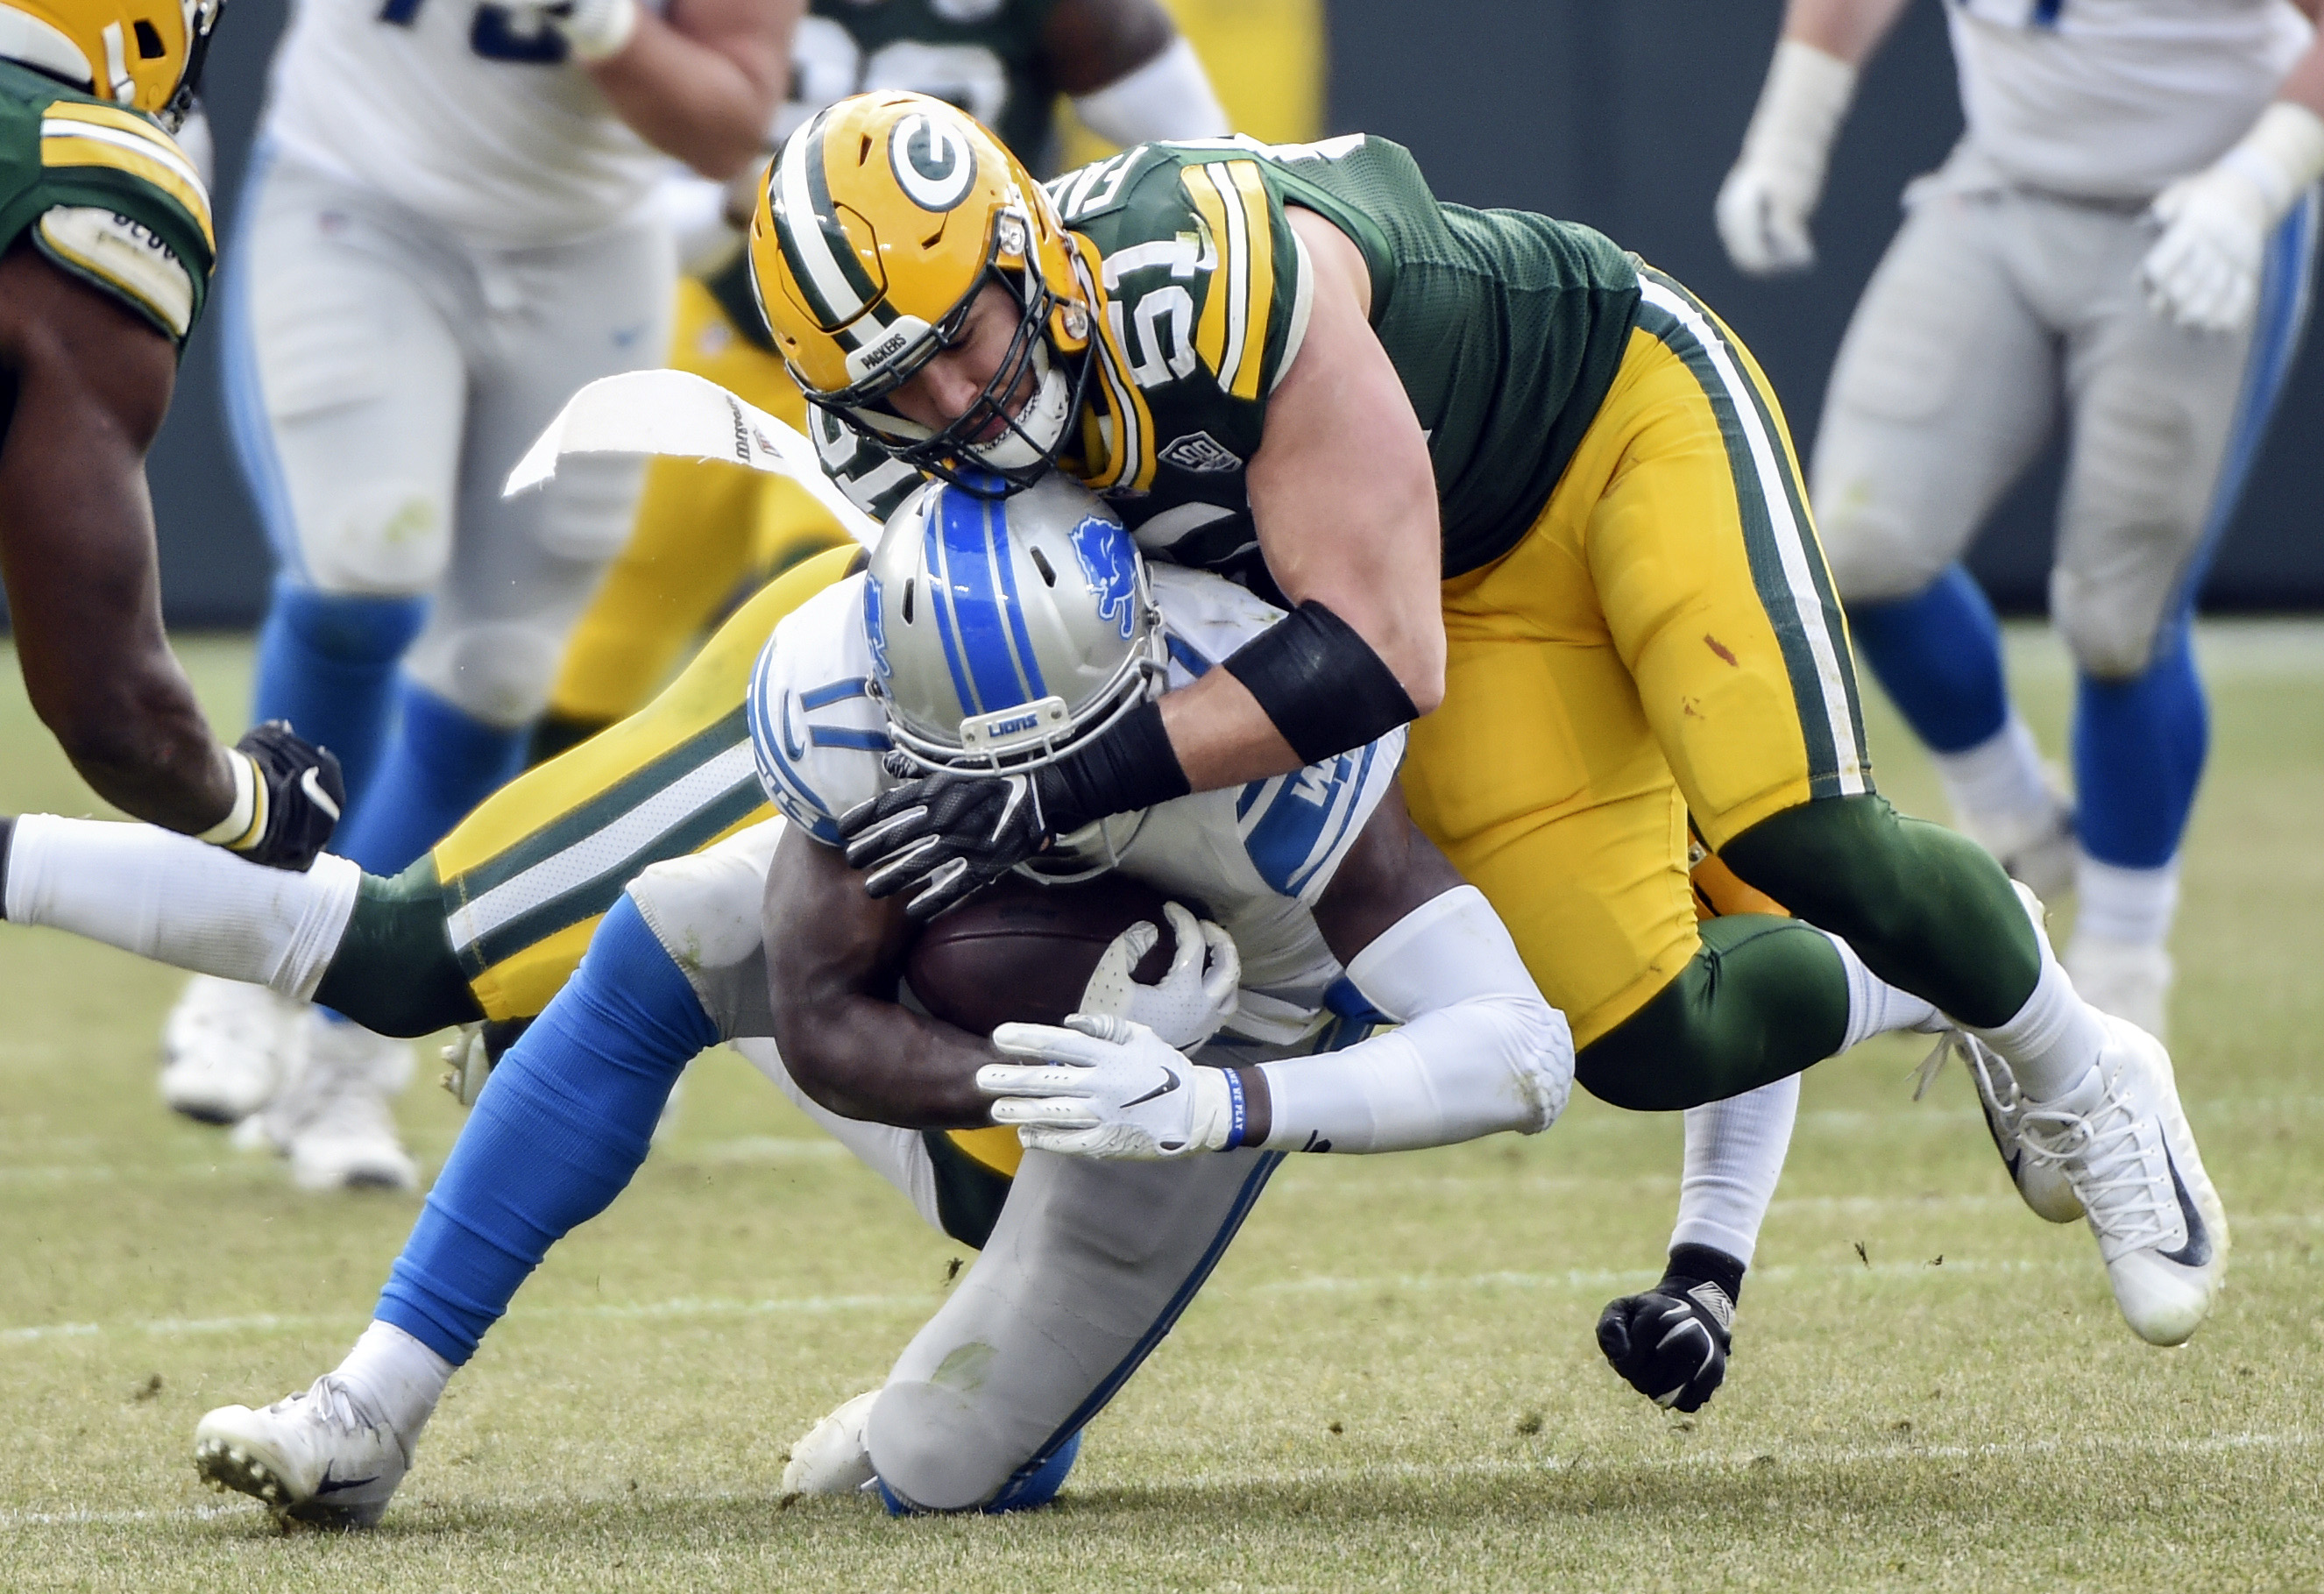 2019 Packers Roster Breakdown - Acme Packing Company